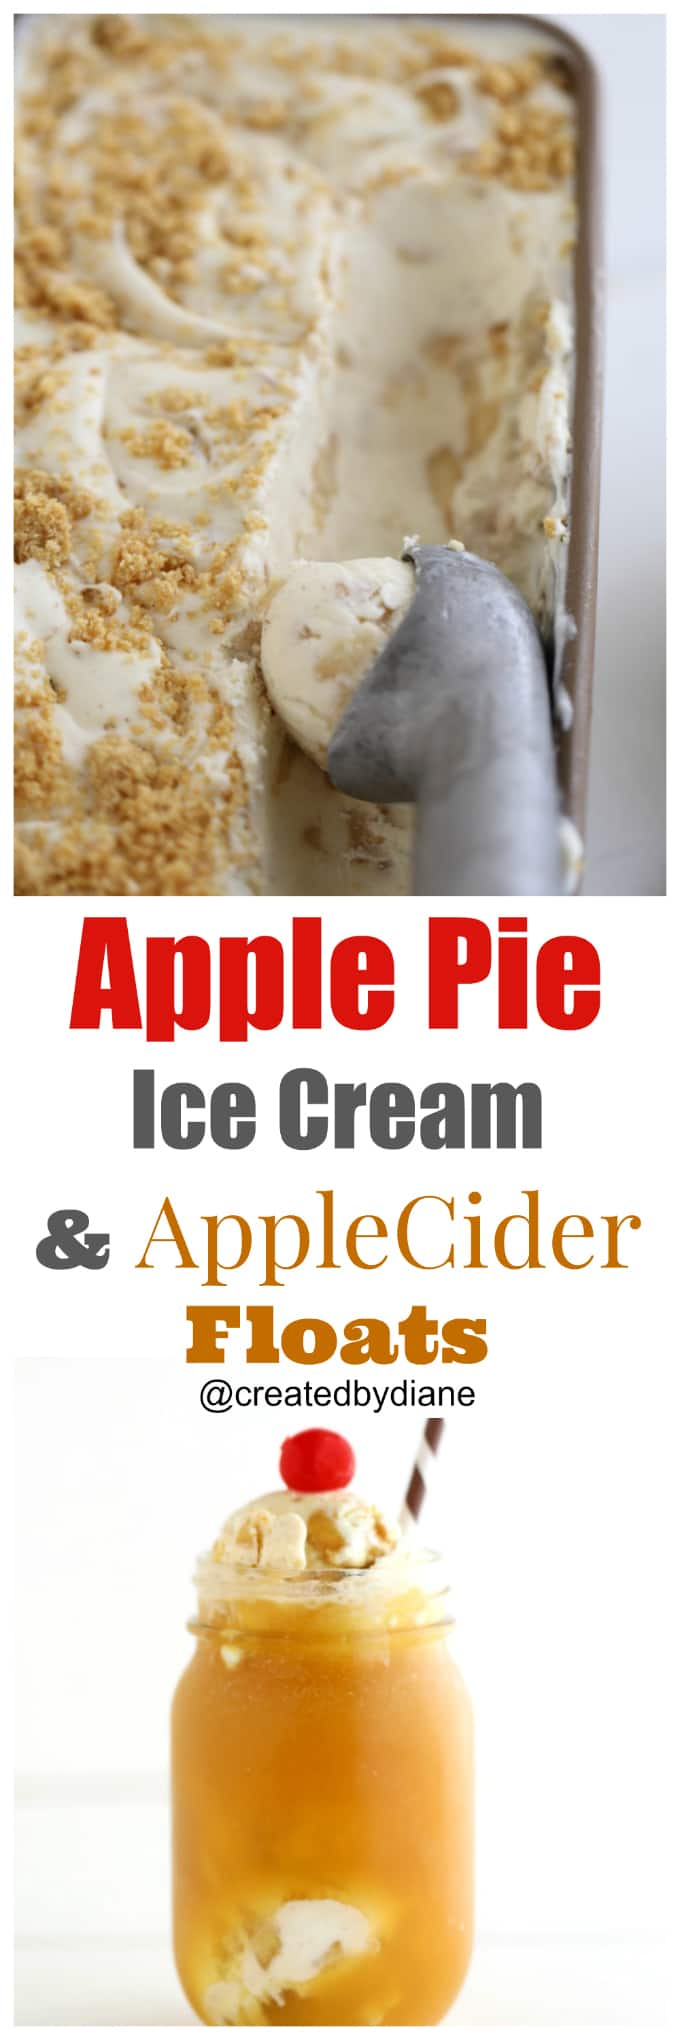 apple-pie-ice-cream-recipe-with-apple-cider-floats-createdbydiane